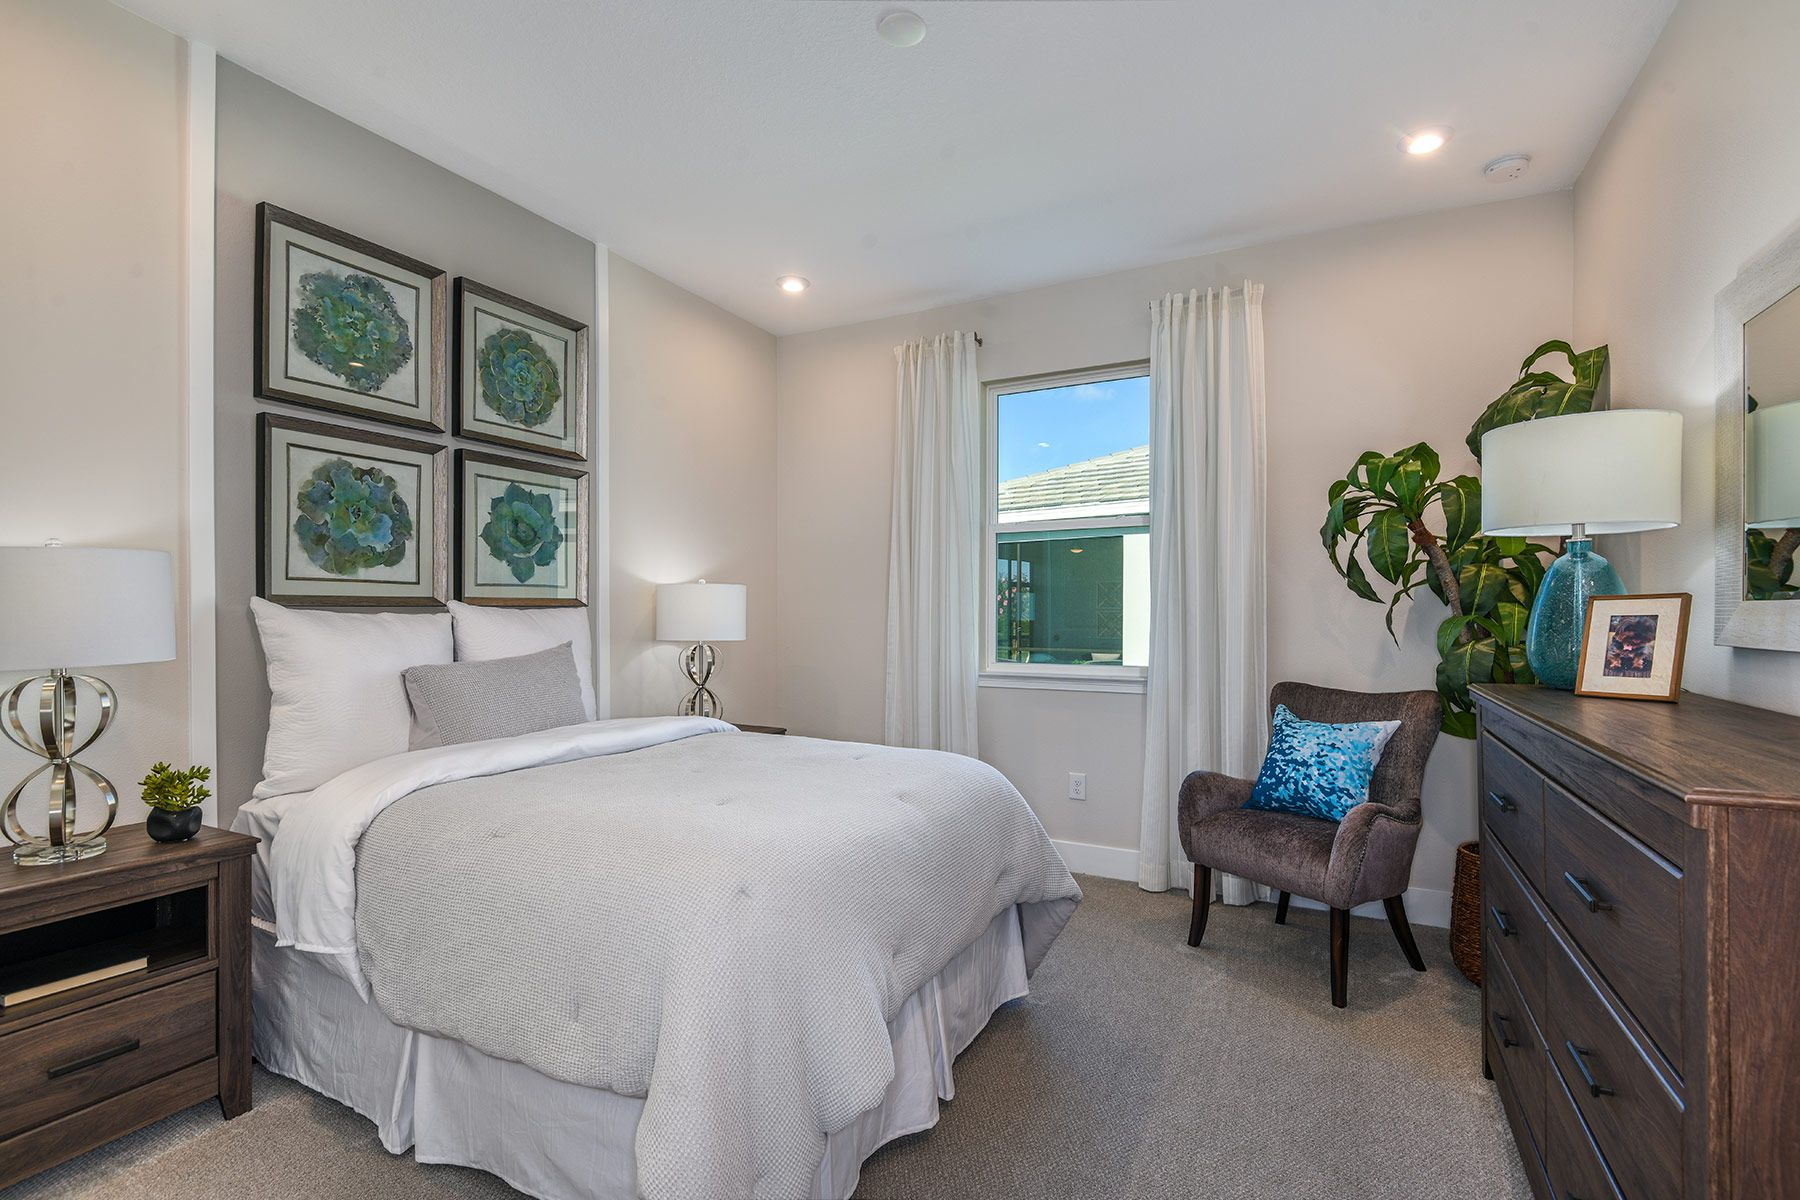 Bedroom featured in the Dominica II By Mattamy Homes in Sarasota-Bradenton, FL